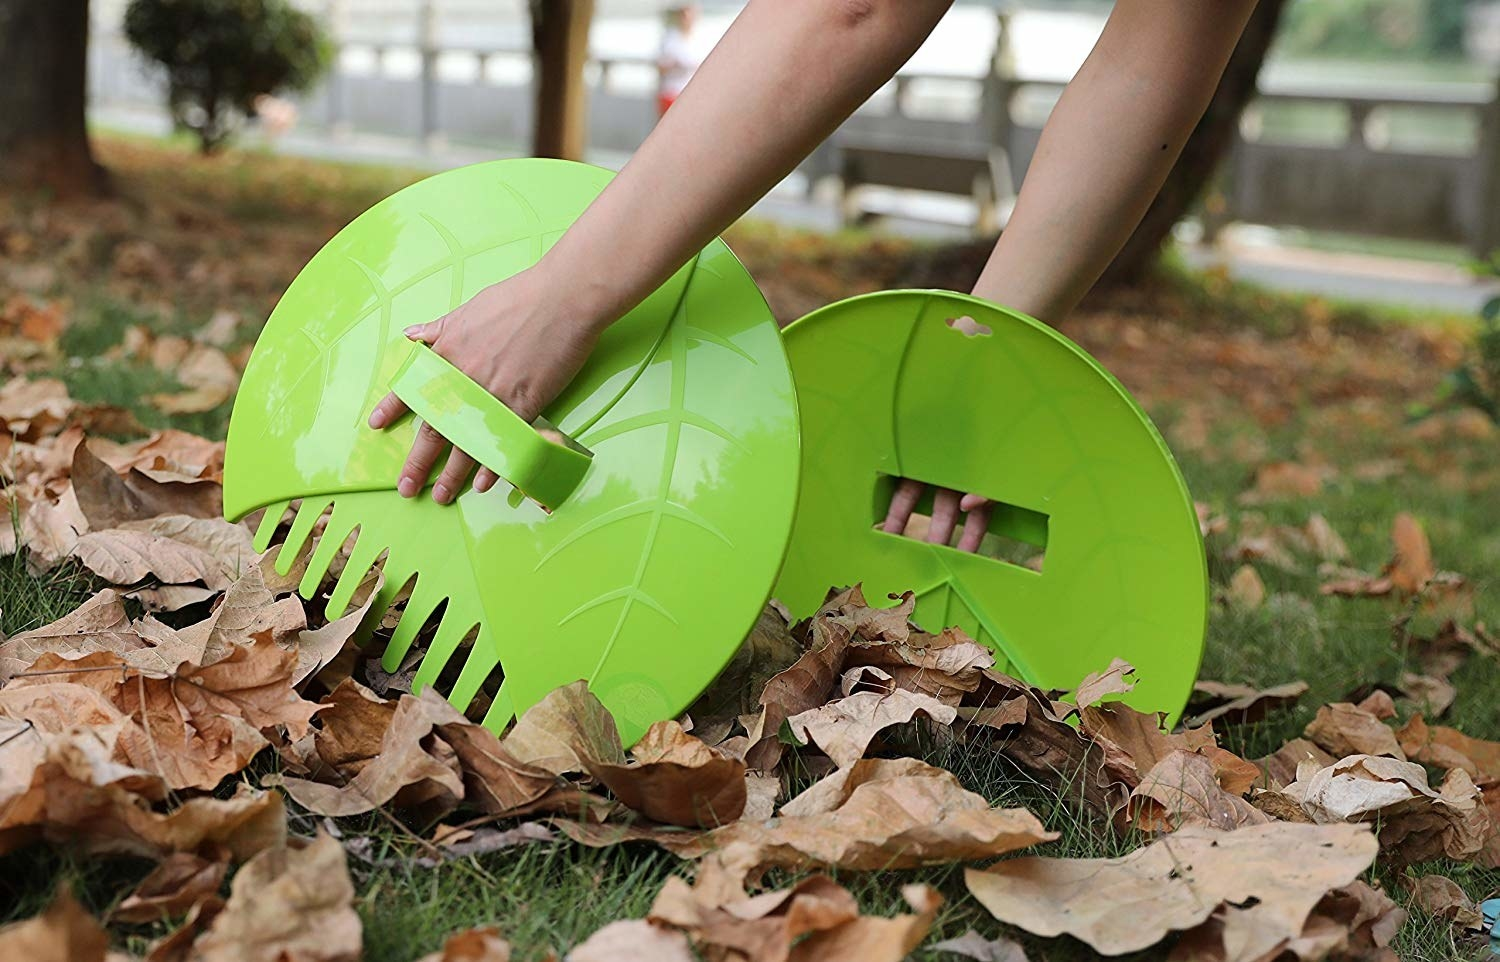 Hands using the trashcan lid-like scoopers with rake teeth on the bottom to scoop leaves